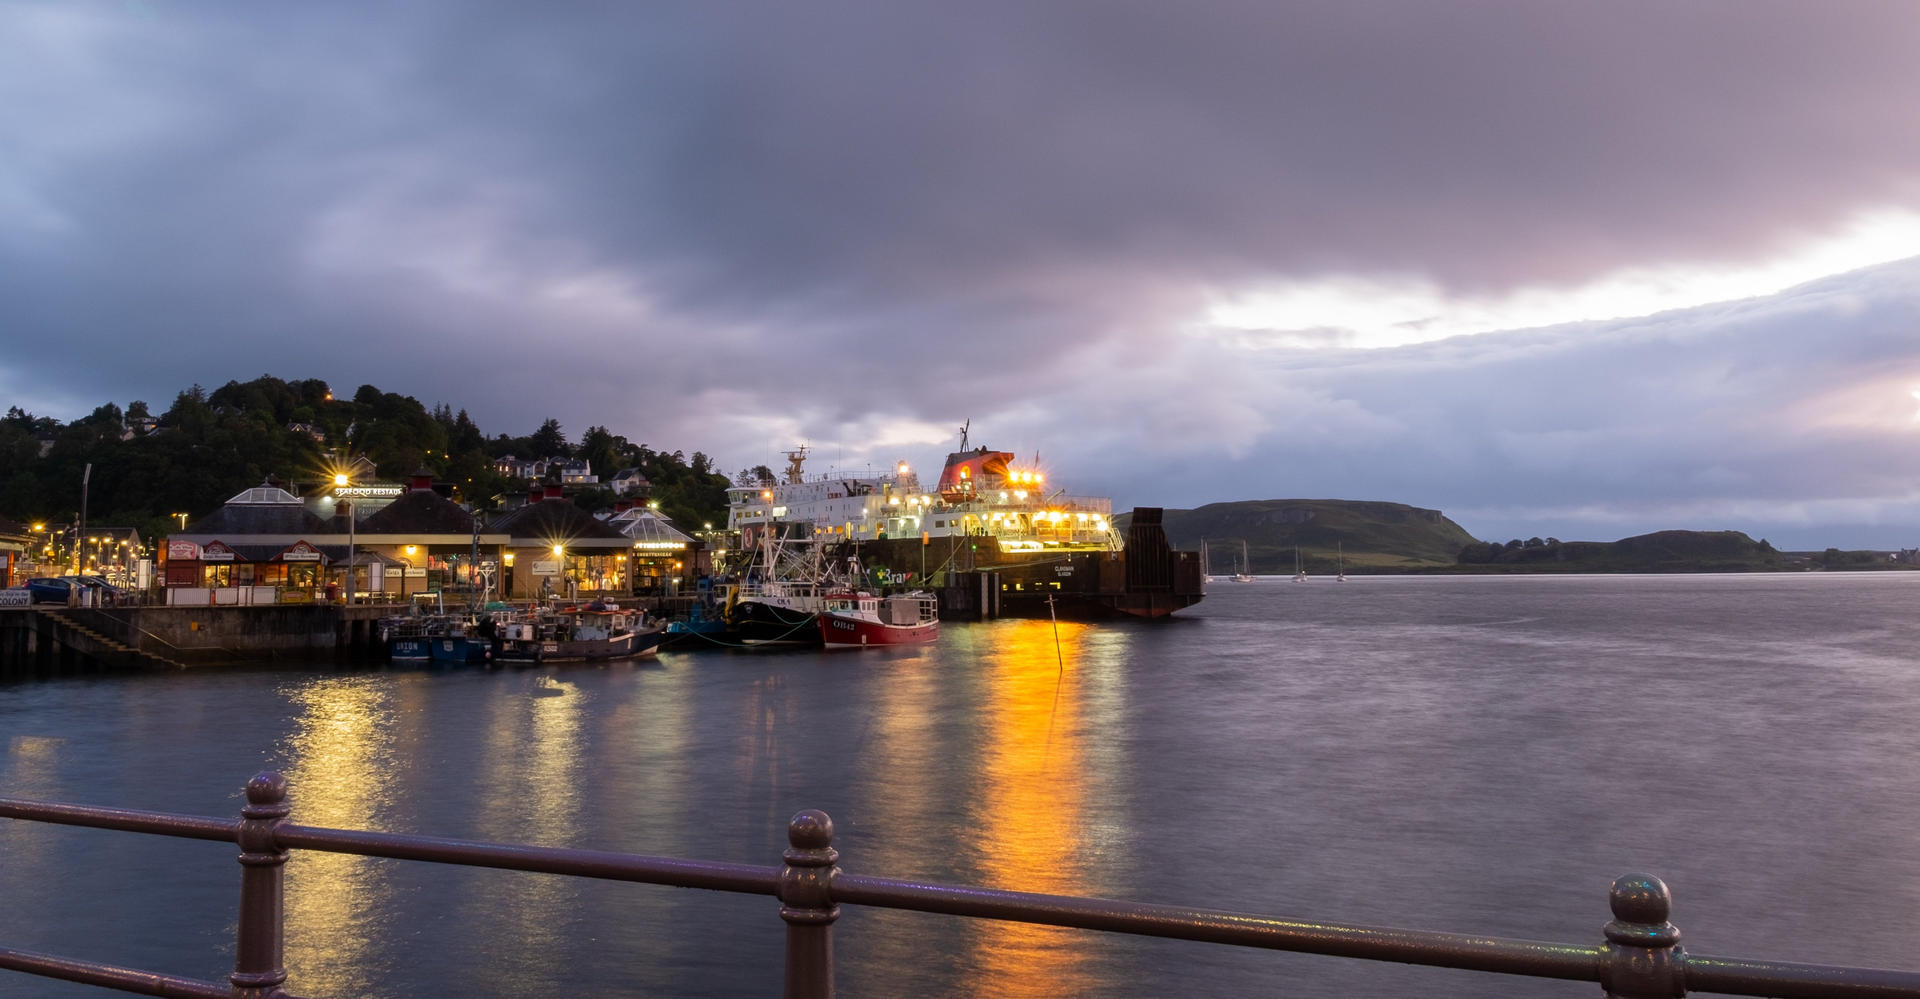 Evening in Oban harbour showing sea loch and ferry in scotland